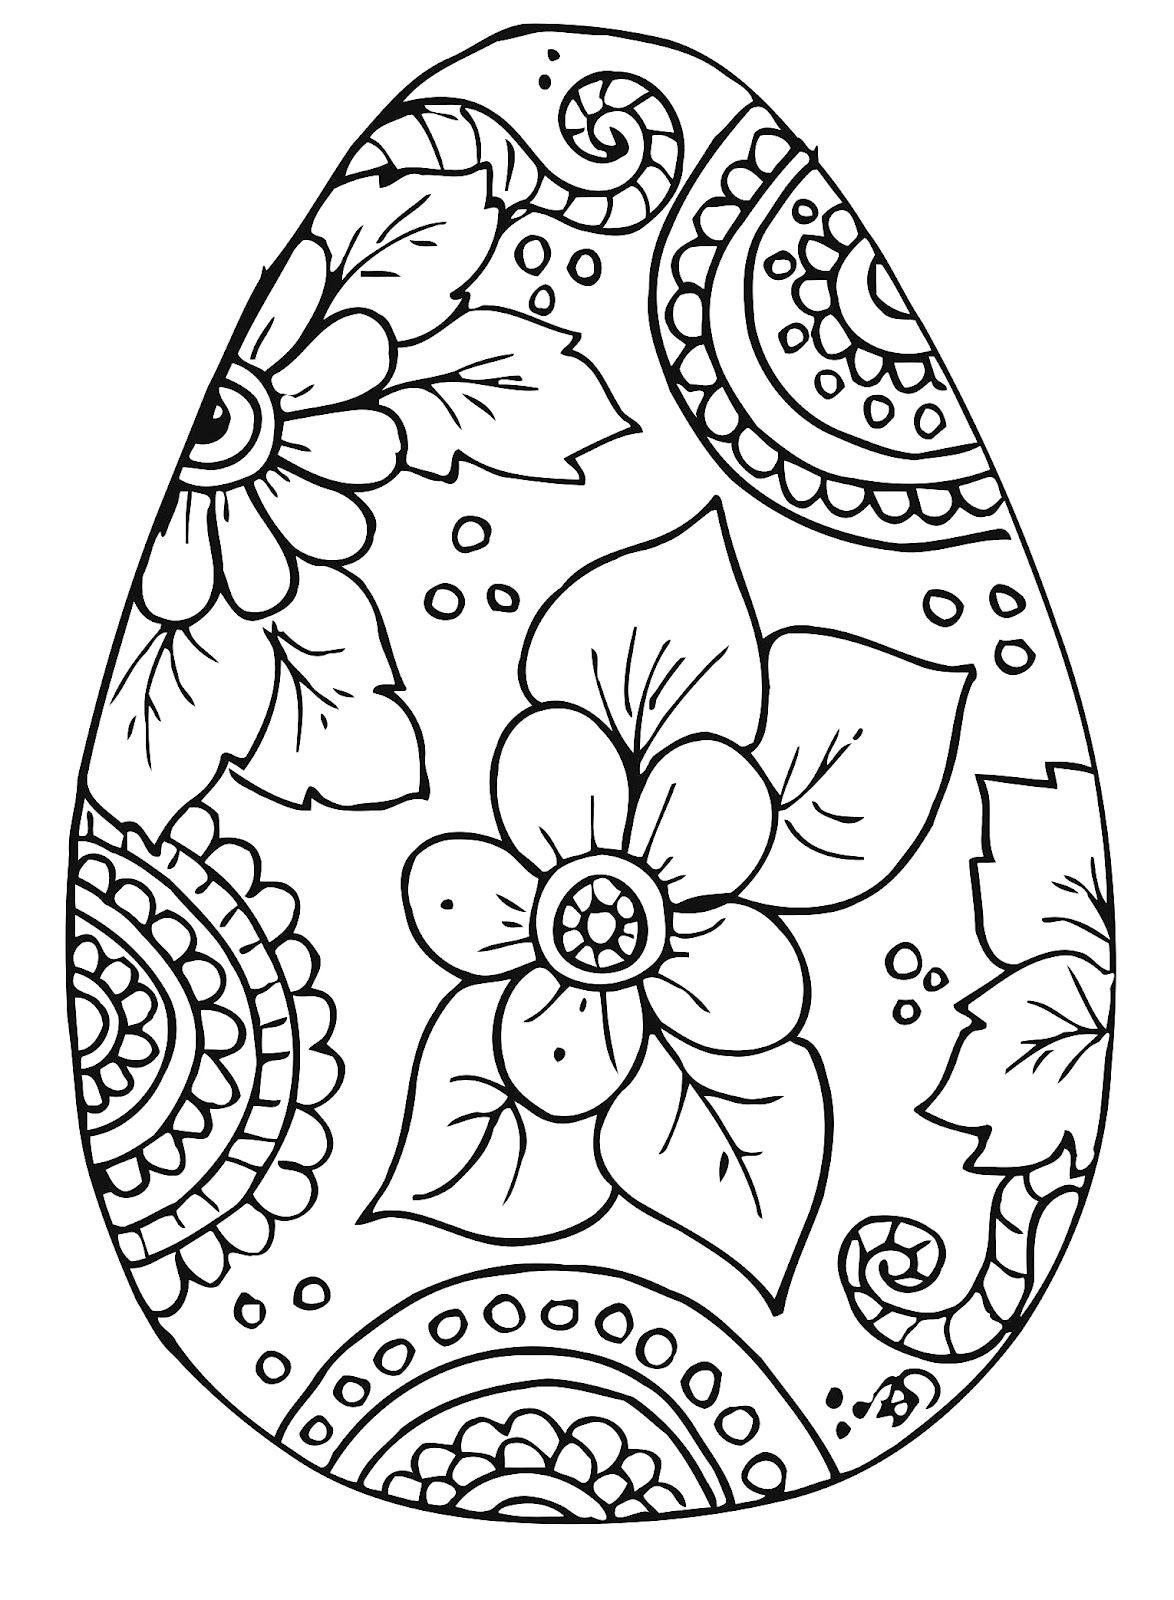 Easter | coloriages et imprimés | Pinterest | Easter, Egg and Free